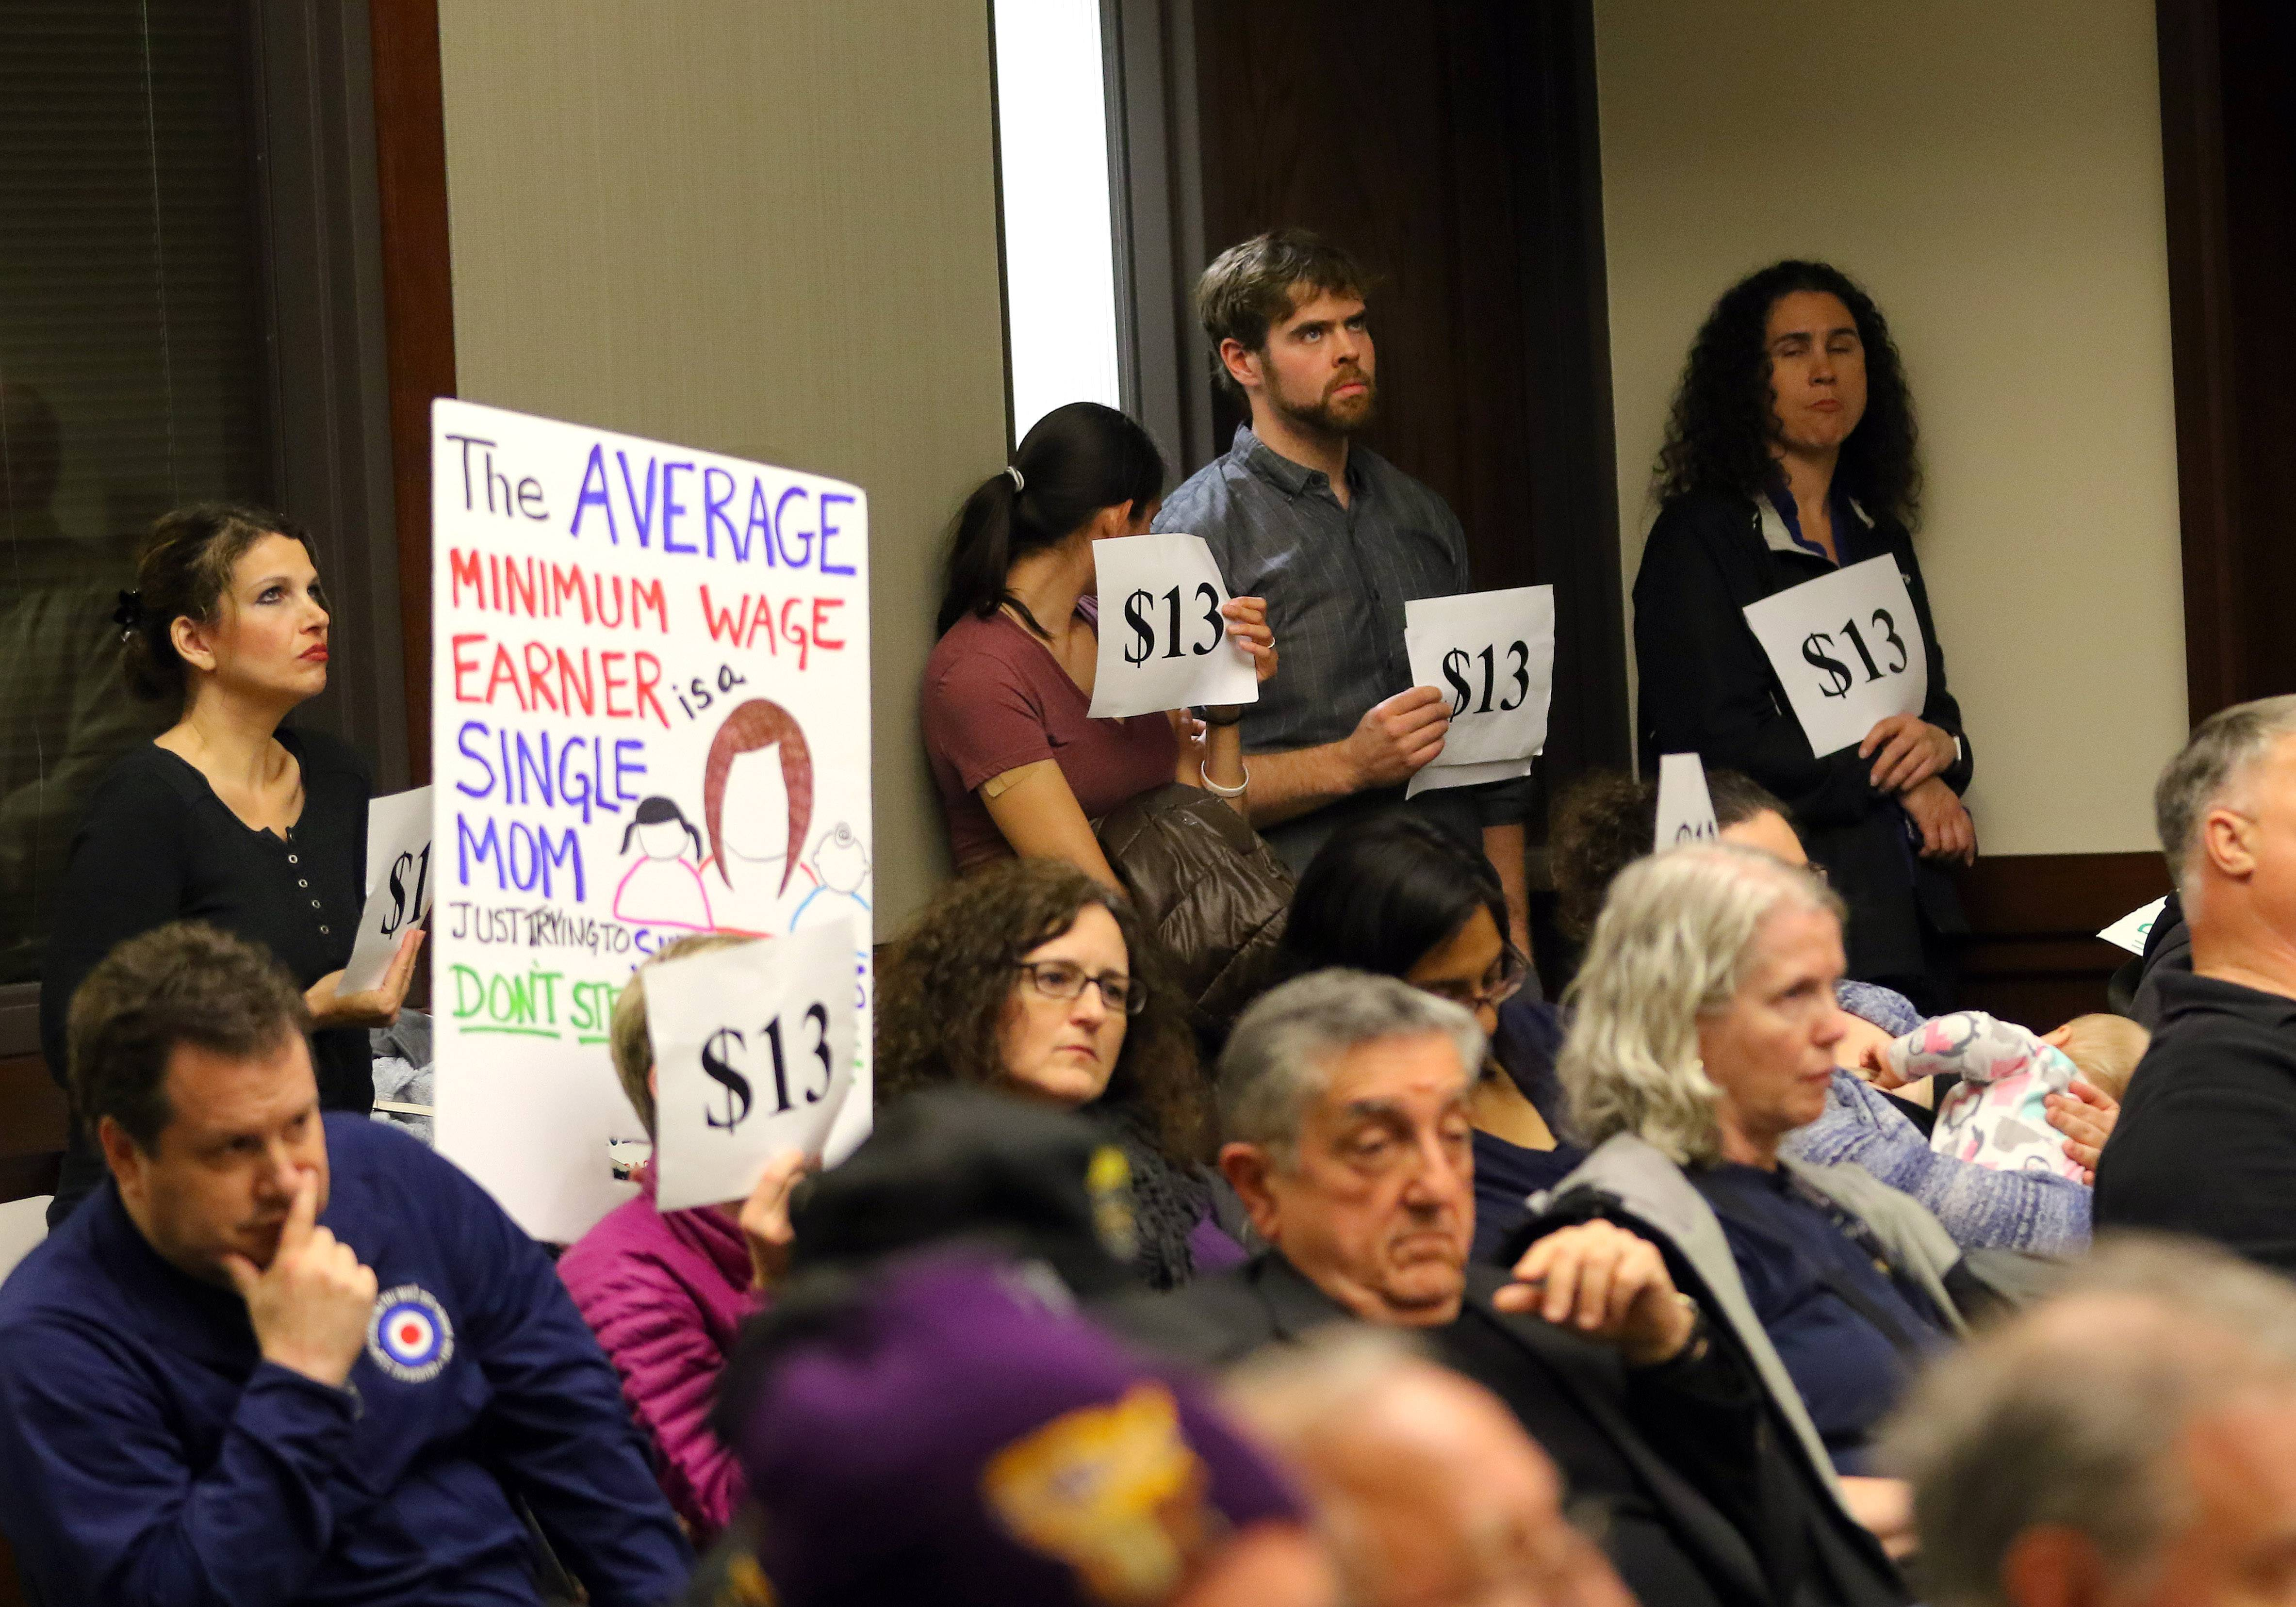 Supporters of Cook County's minimum wage and sick leave ordinances hold signs during an Arlington Heights village board meeting earlier this year. Despite the protest, Arlington Heights trustees voted to opt out of the ordinances.